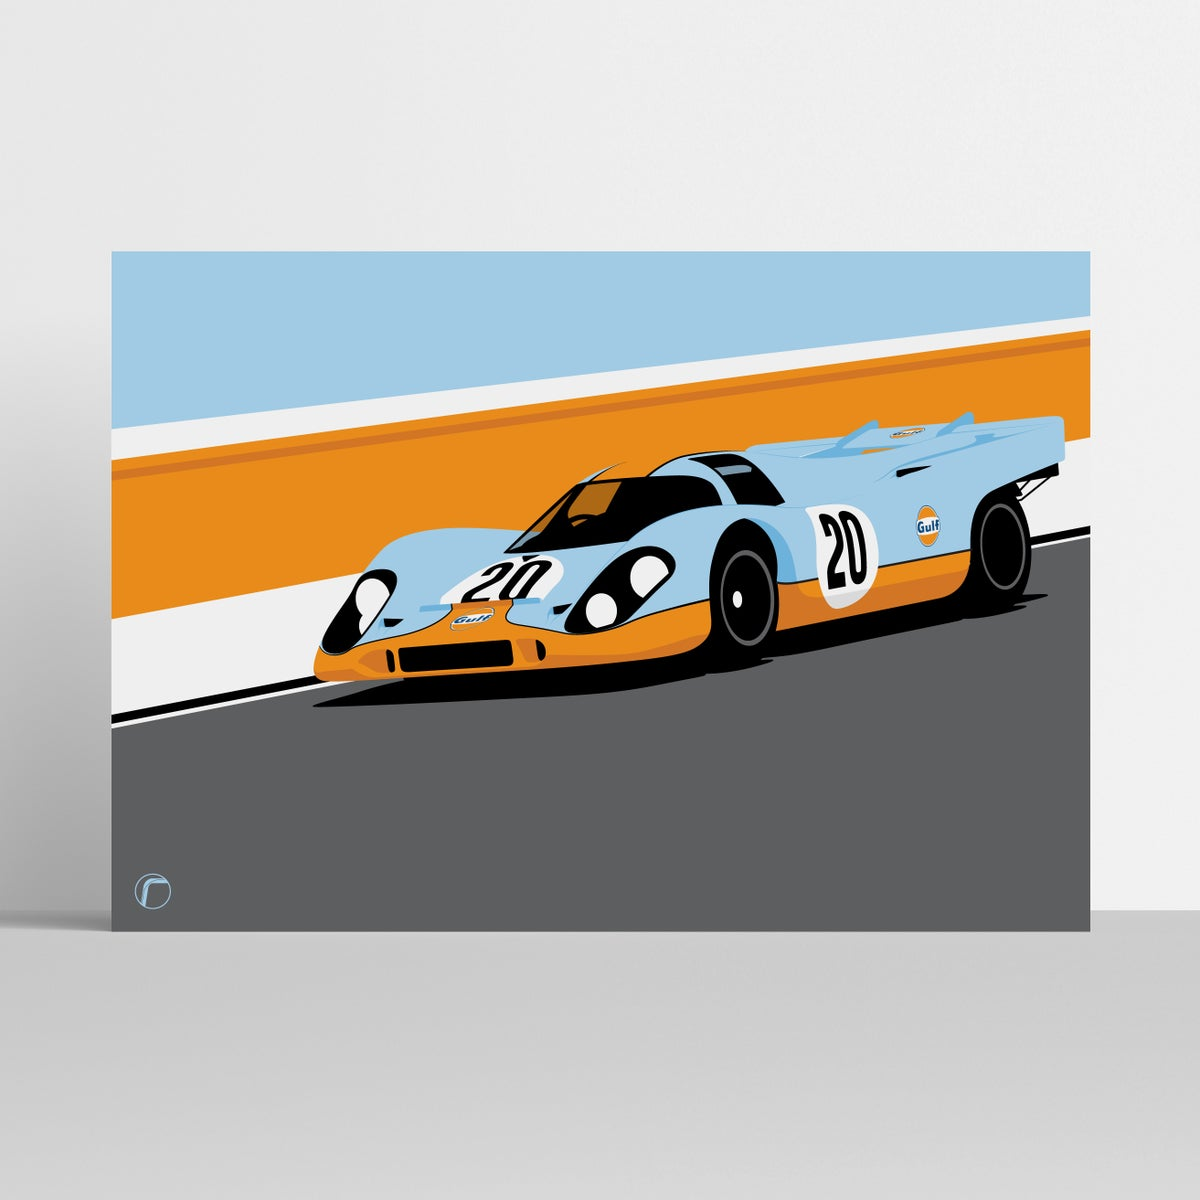 Image of Porsche 917 | Gulf Racing